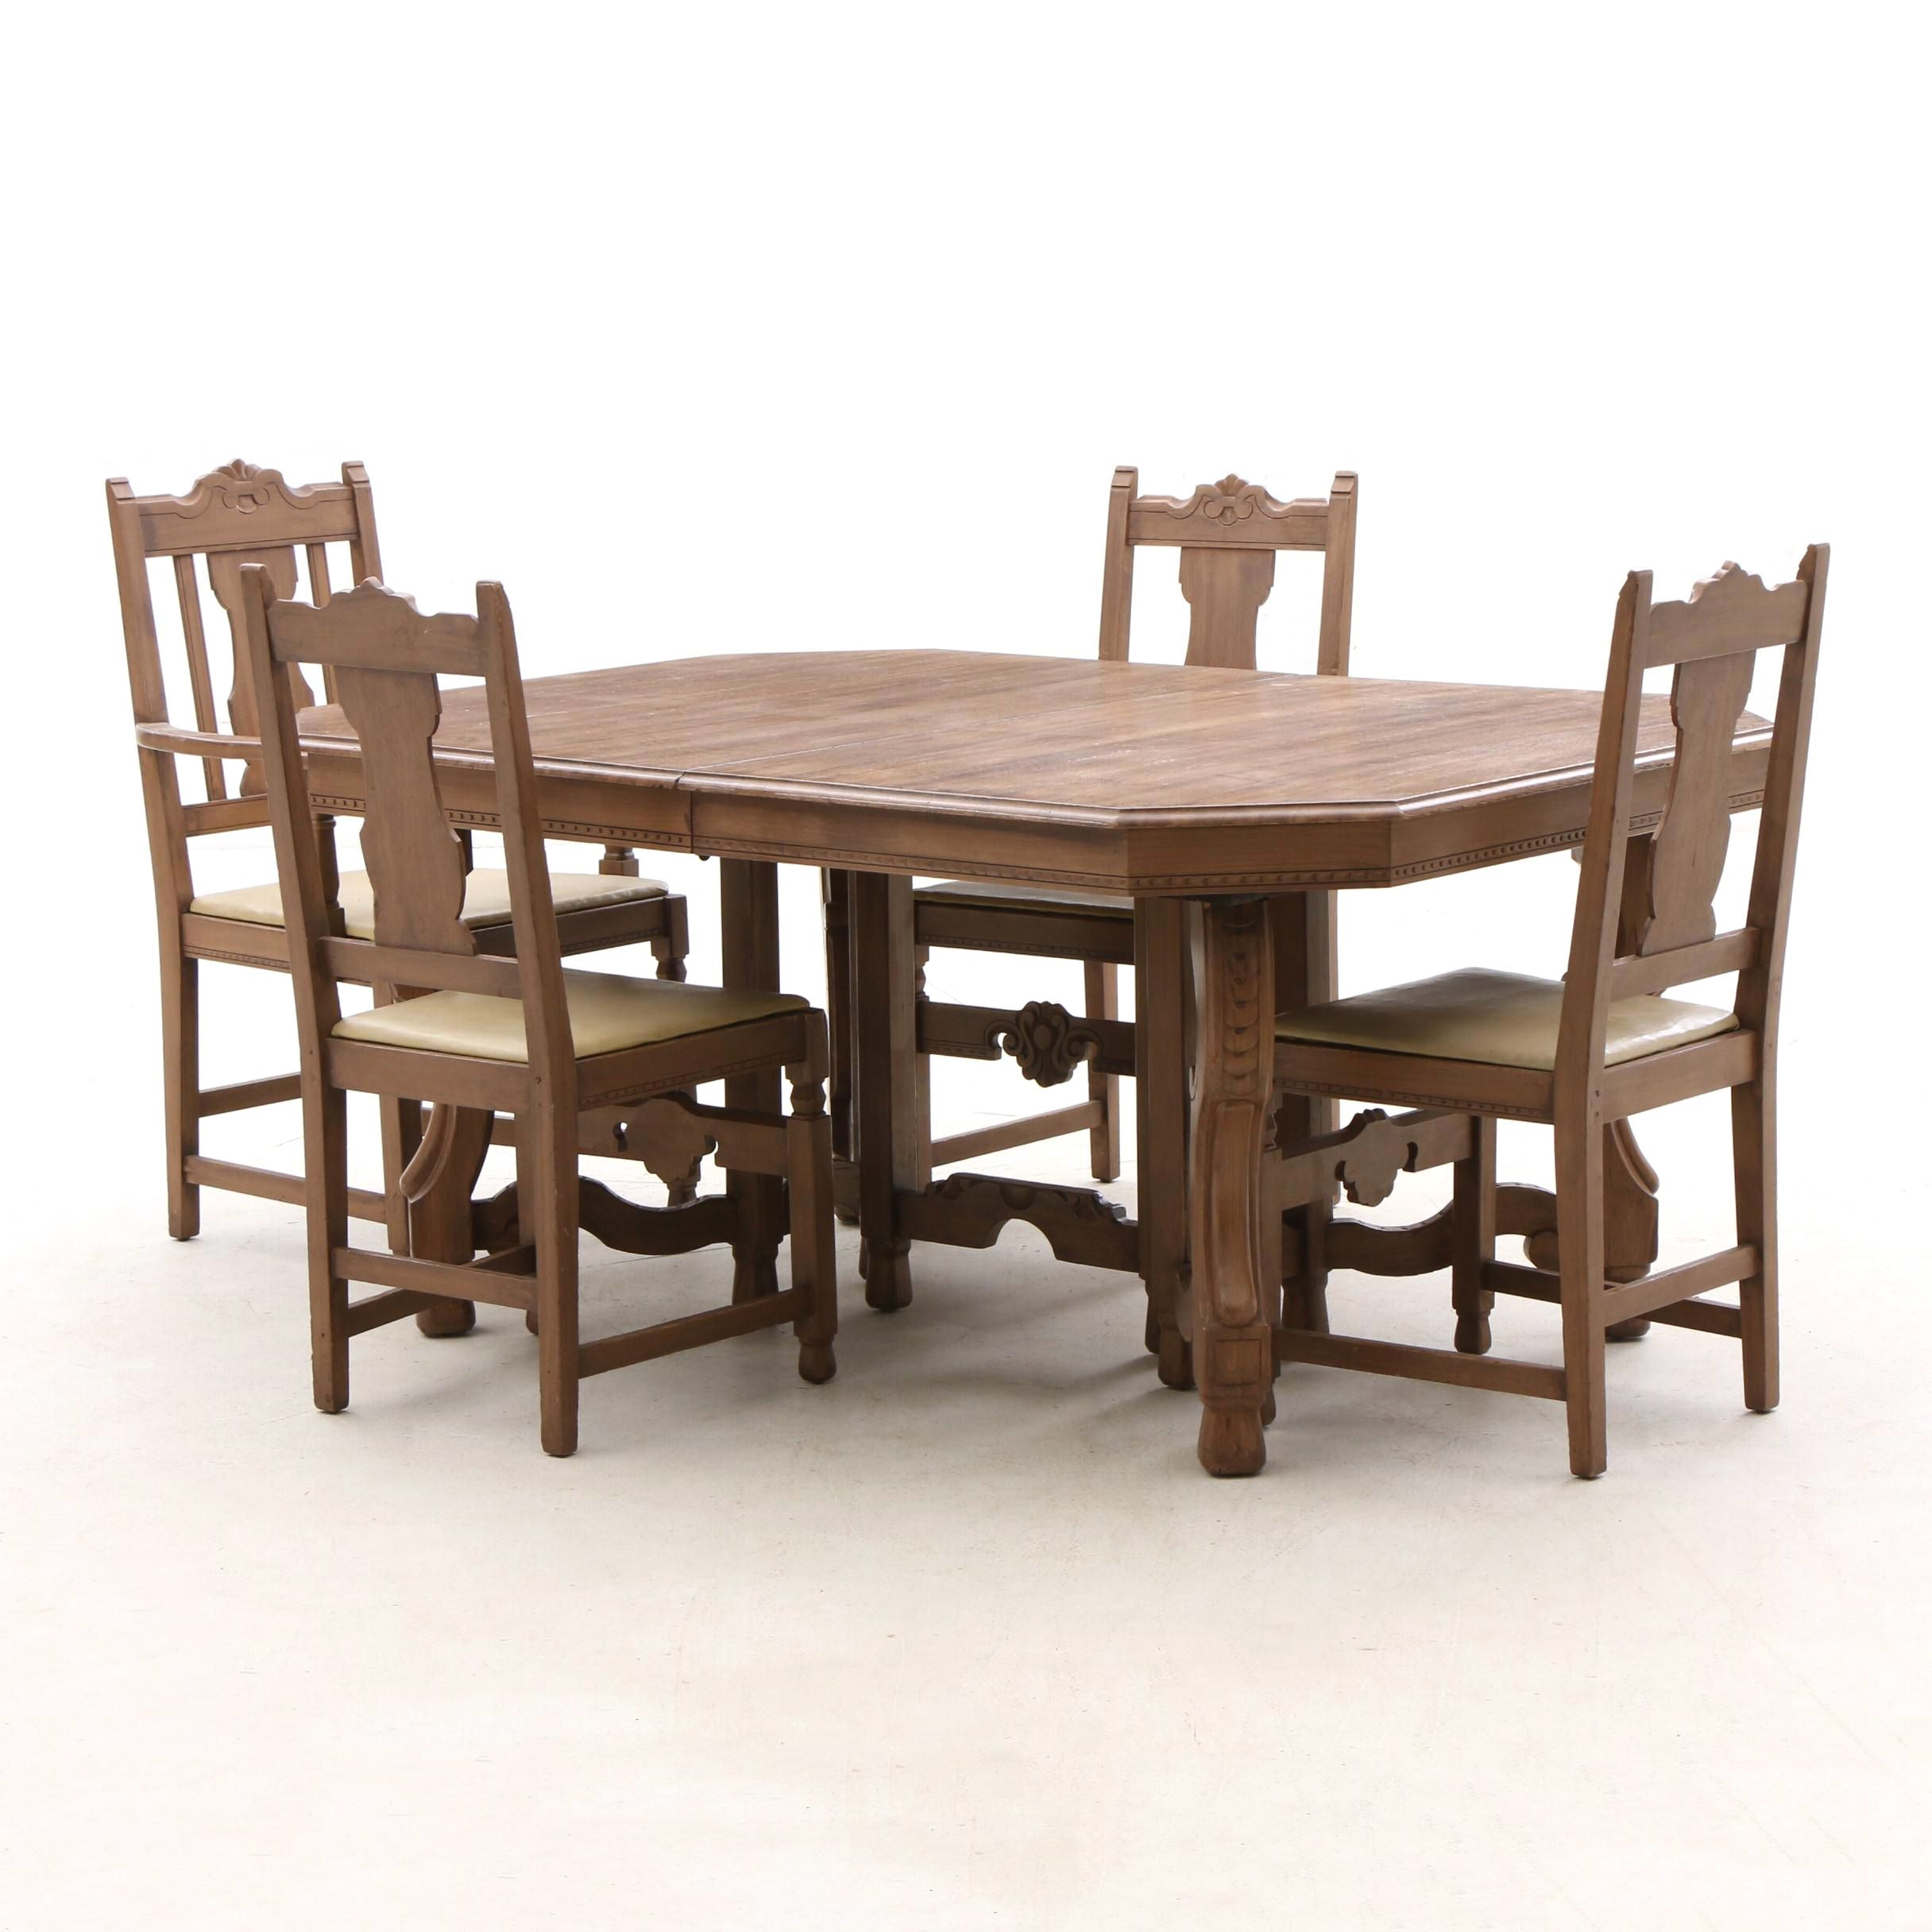 Jacobean Revival Dining Table and Chairs